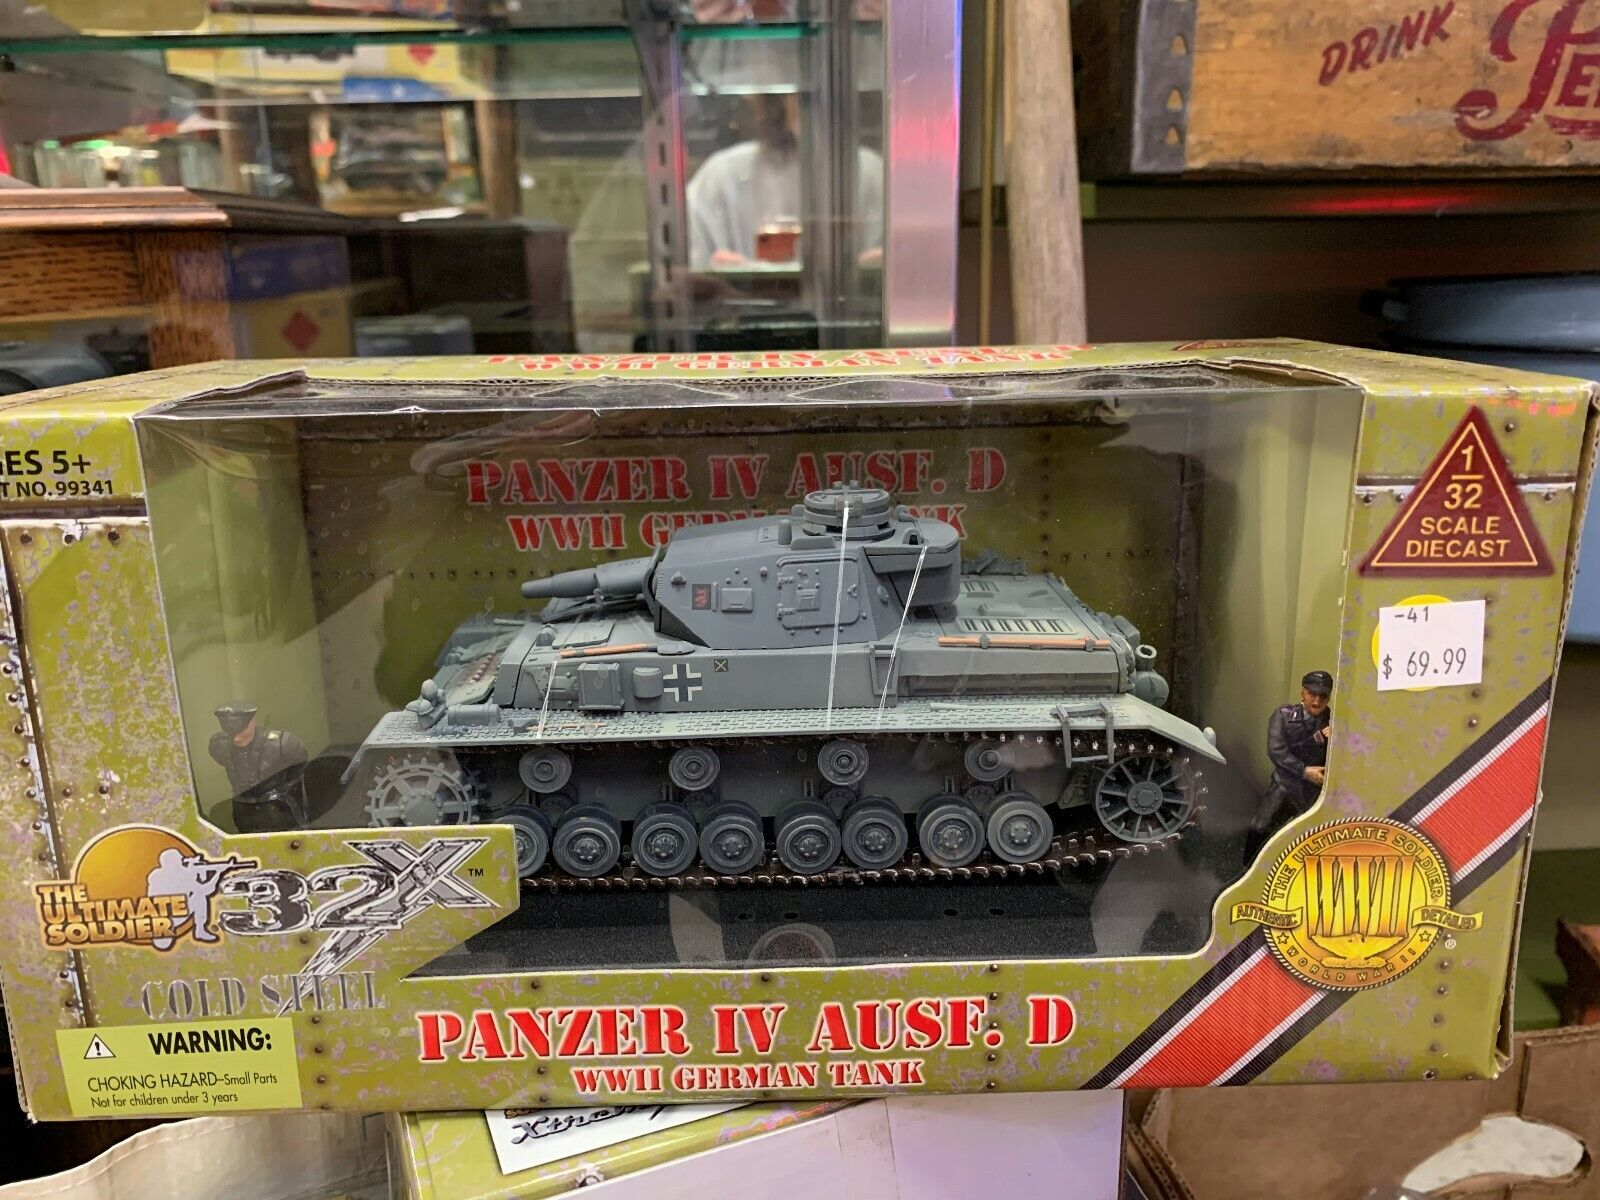 Ultimate Soldier 1 32 WWII Geruomo Panzer IV AUSF. D Tank 21st Century giocattoli